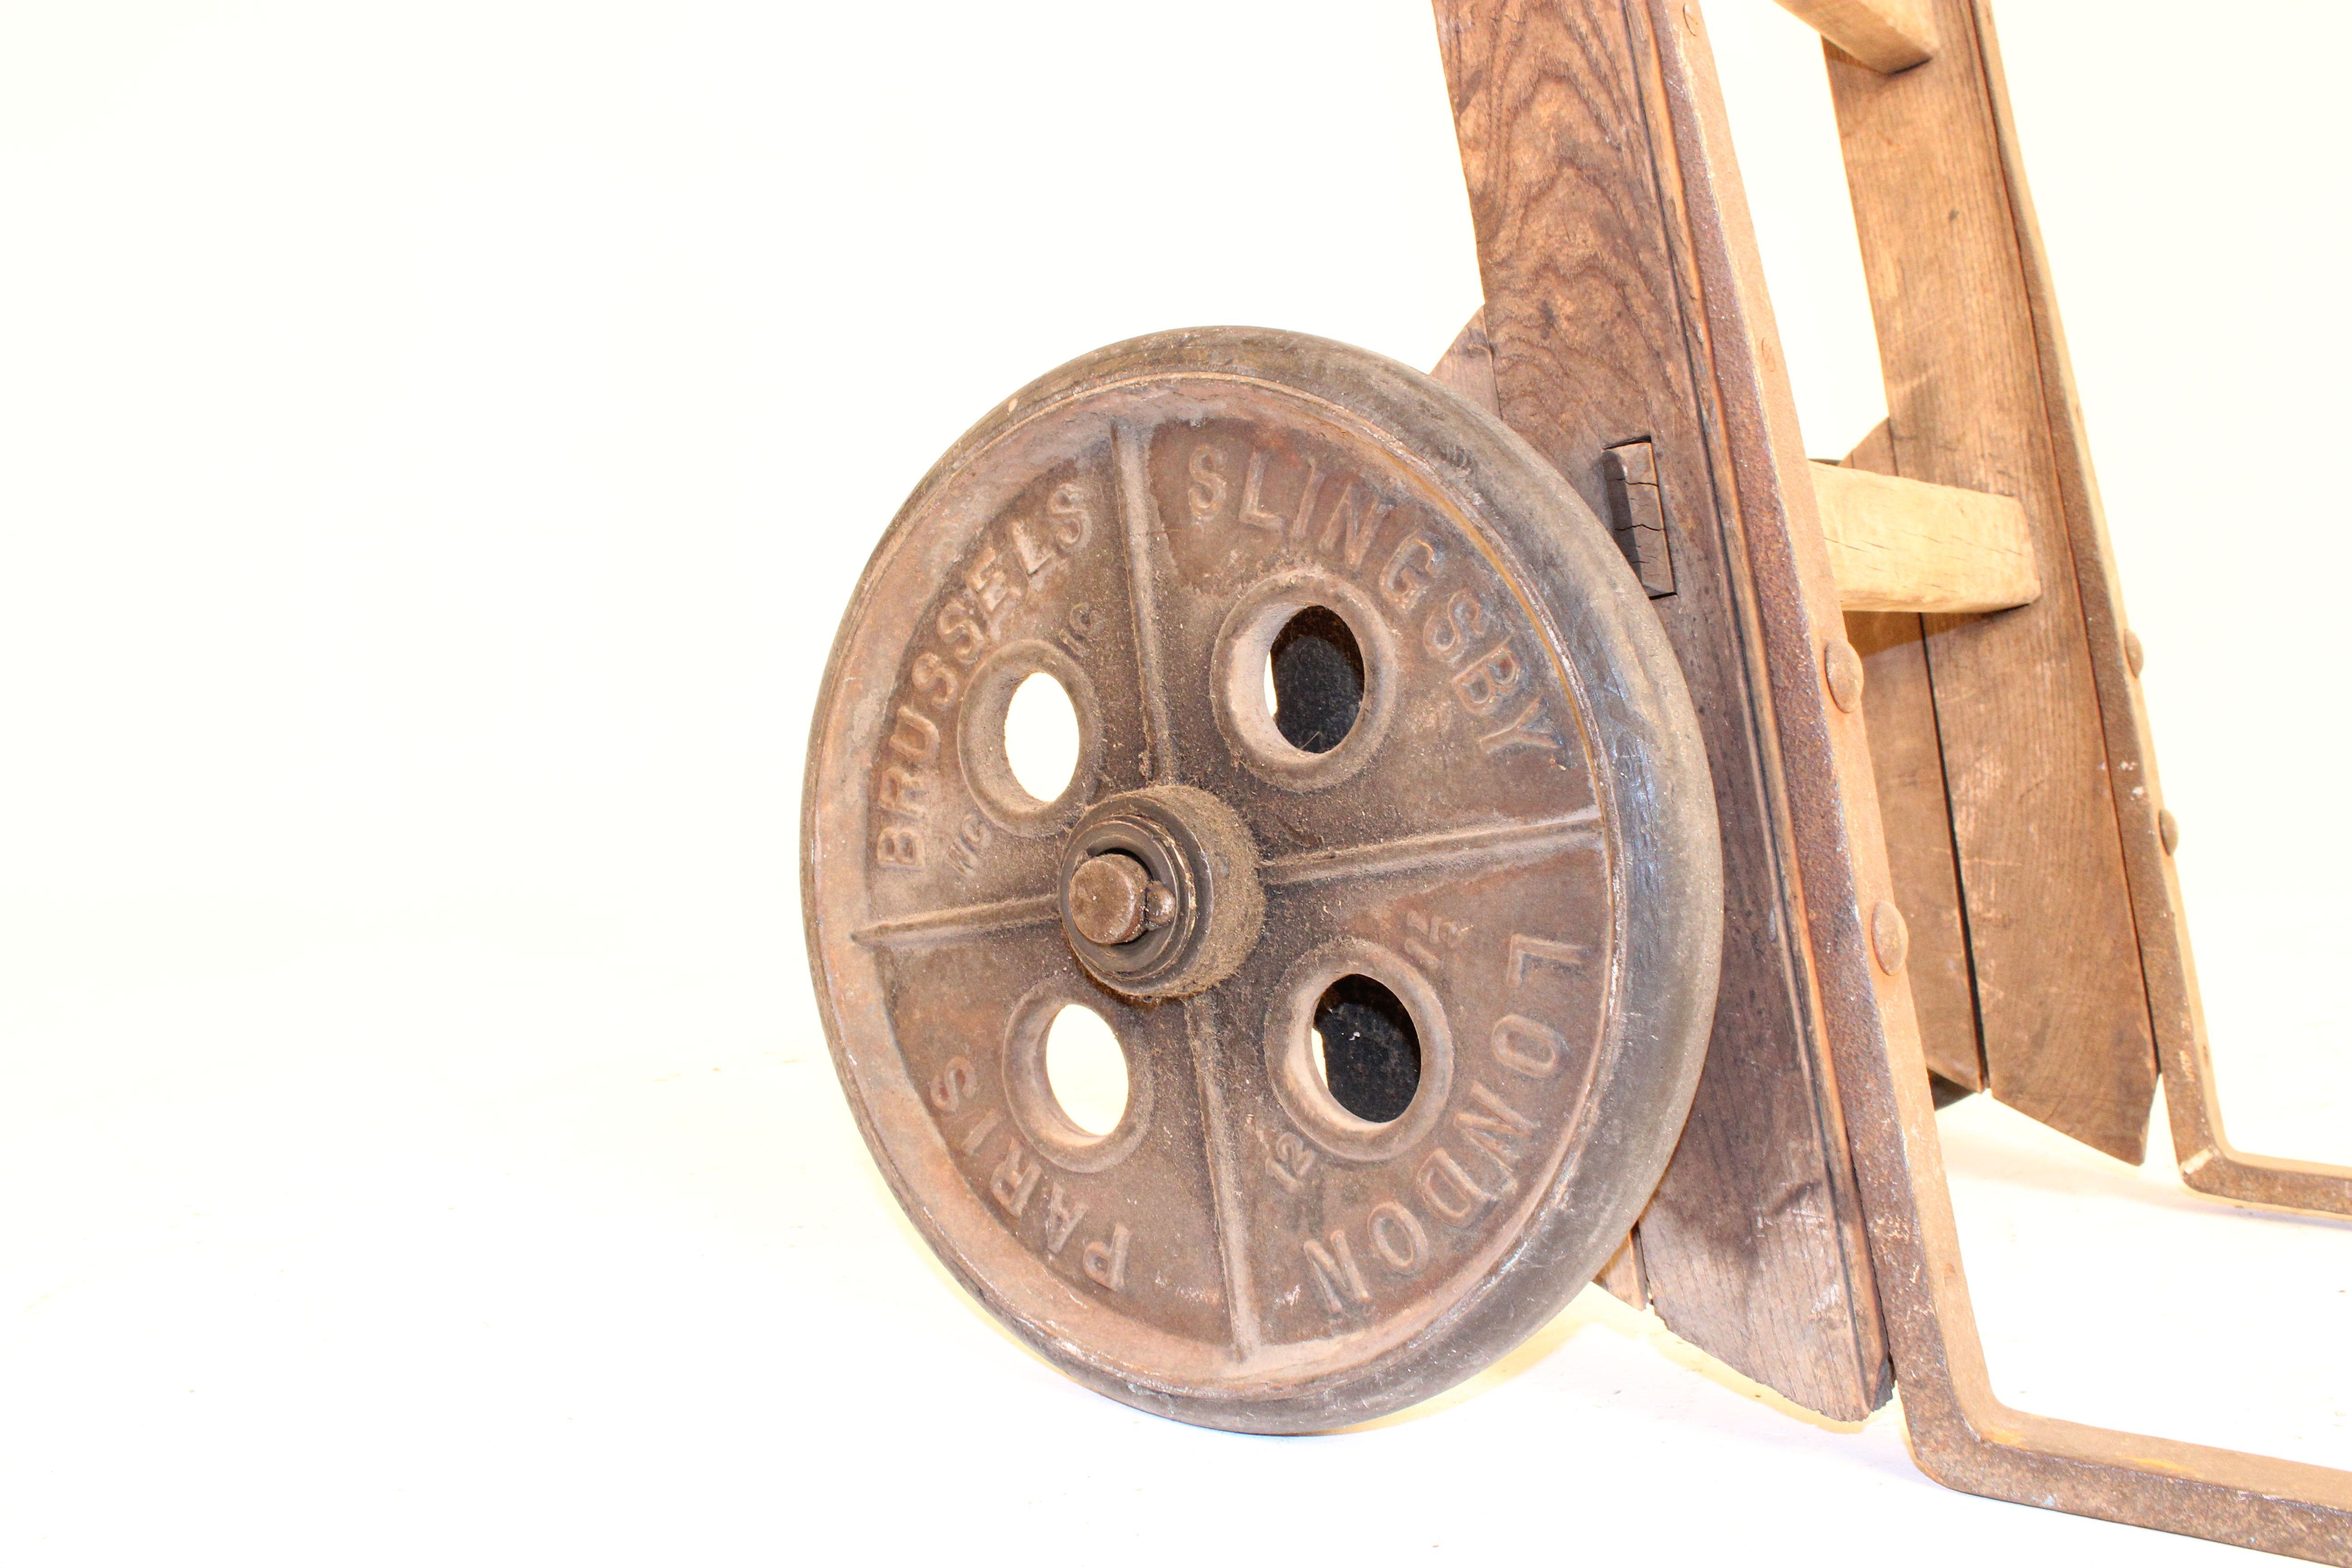 Slingsby cast iron wheel on wooden handtruck. Quality that lasts a lifetime